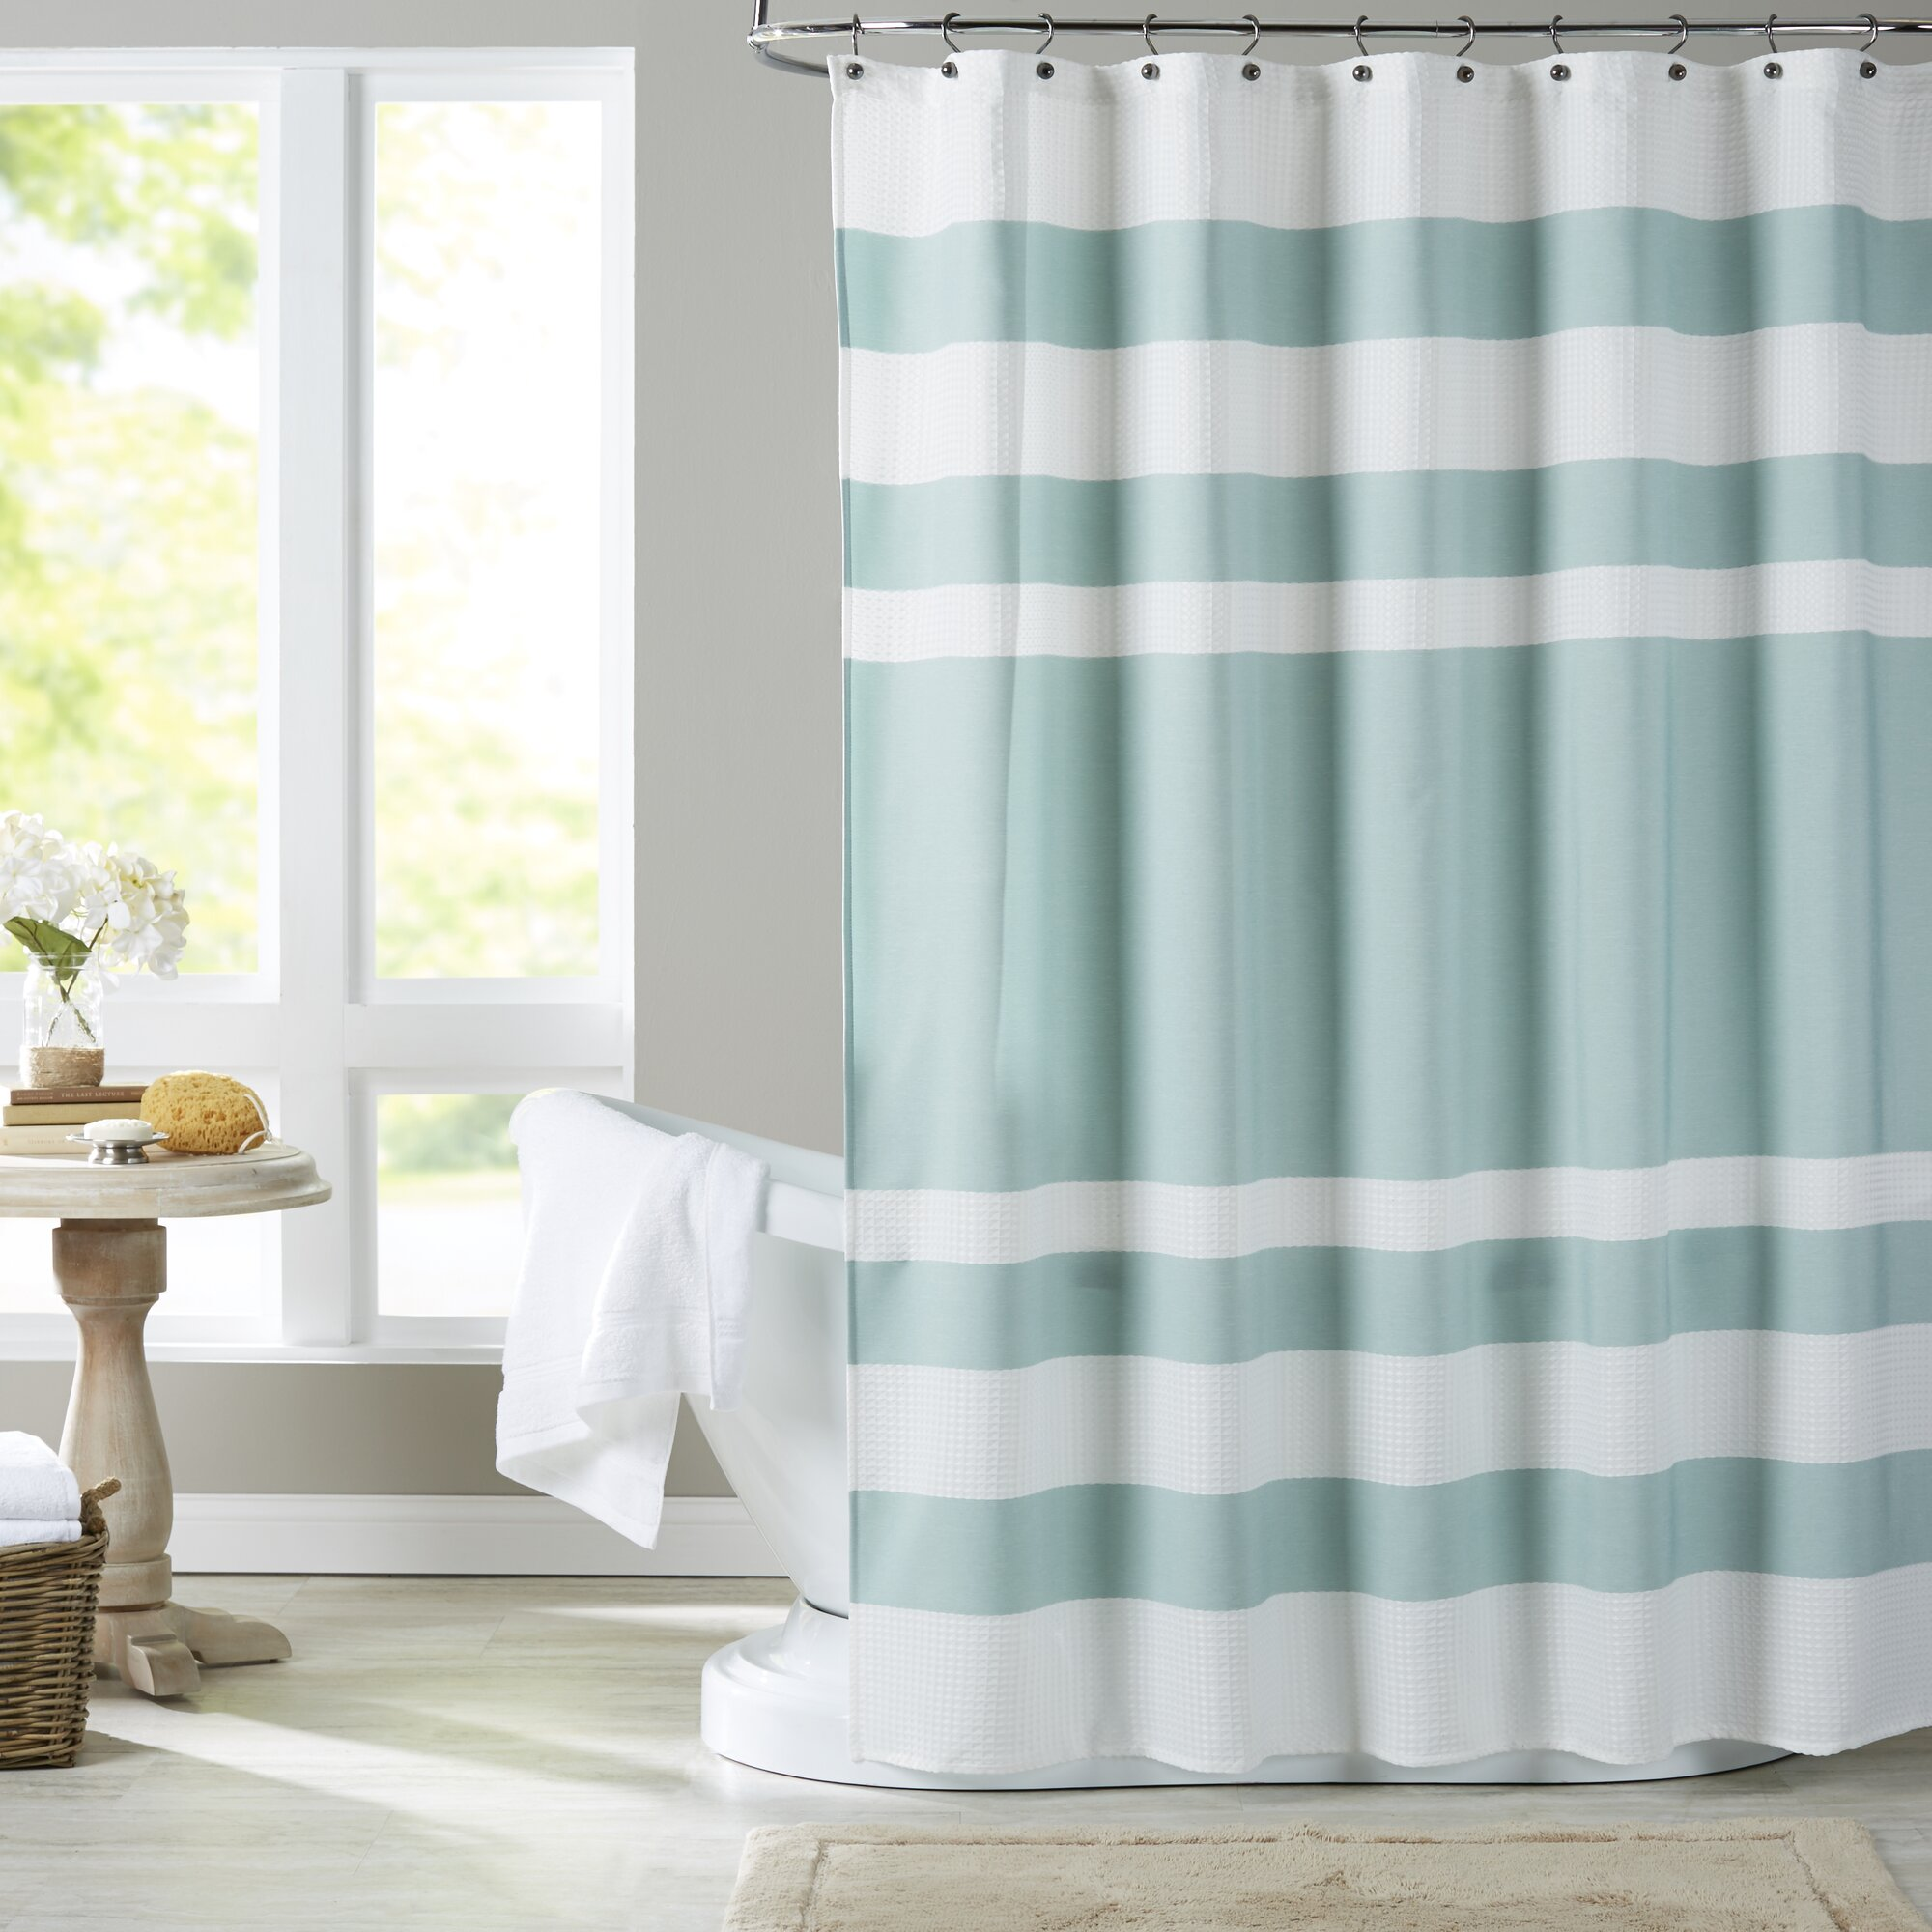 Coral and mint shower curtain - Pineapple Shower Curtain Wayfair Mint Green Shower Curtain